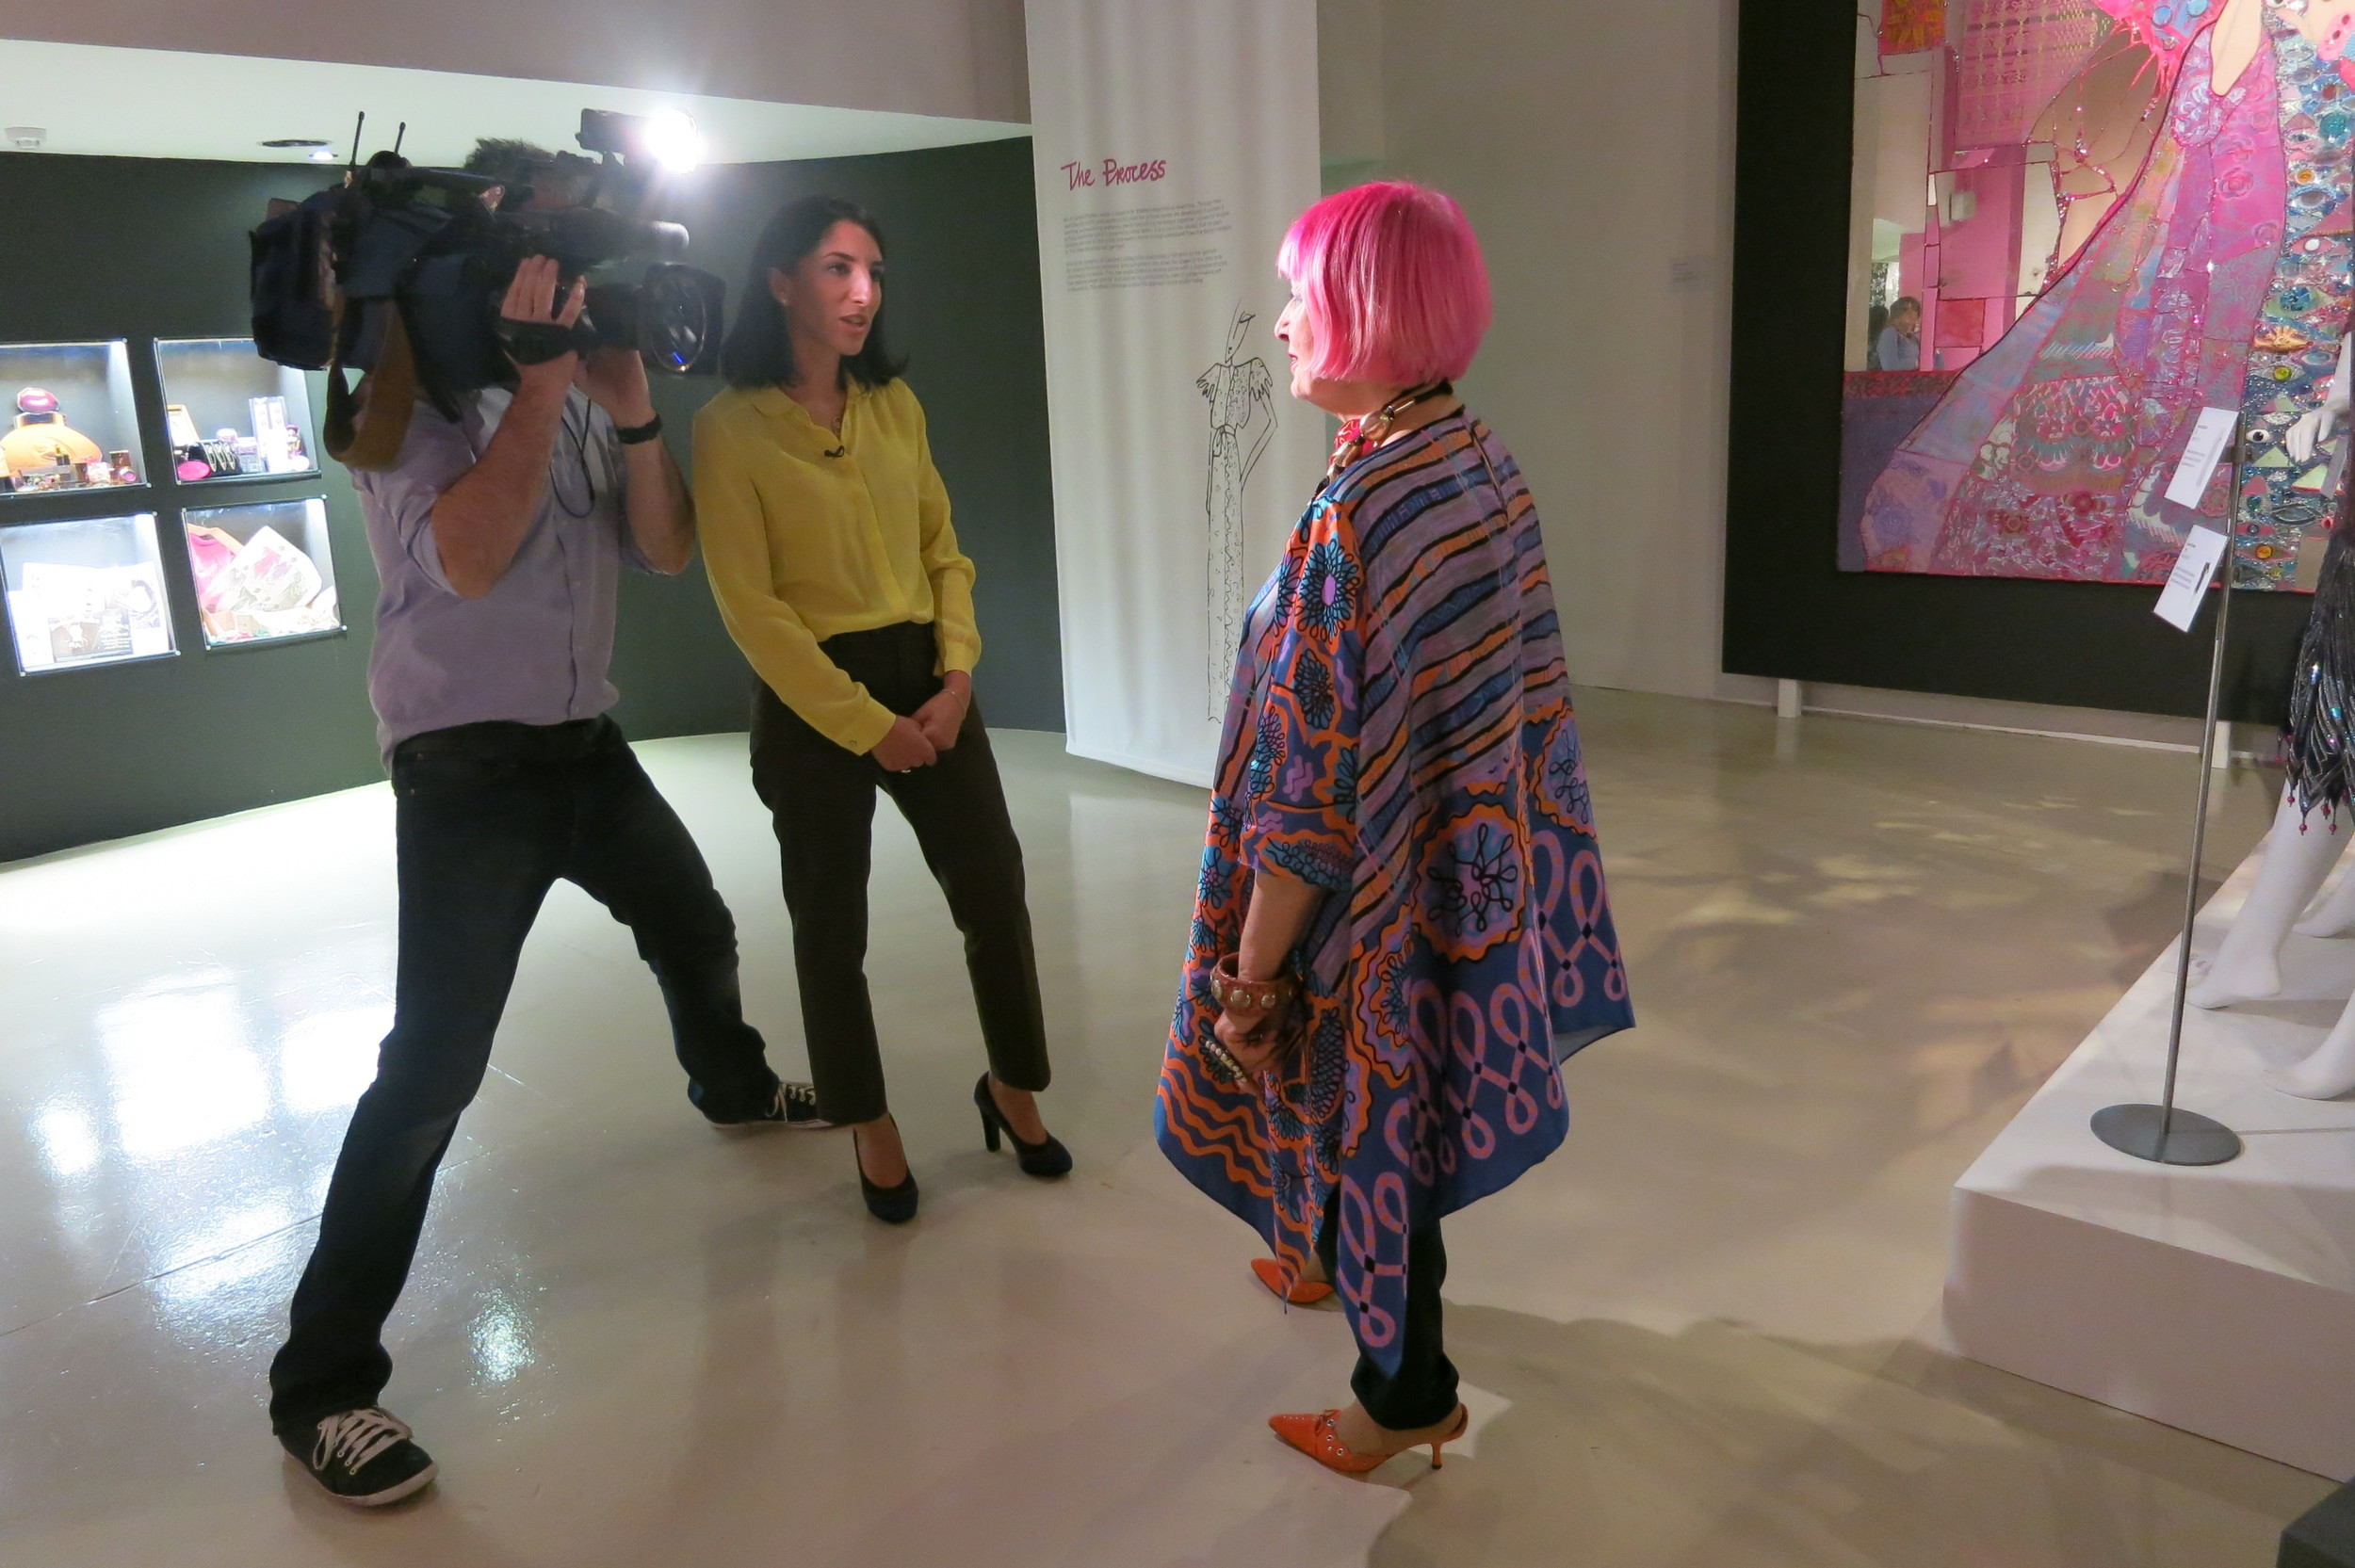 Zandra Rhodes happened to come into the museum while we were there to be interviewed. She was stunning - her fabulous outfit of course was her own design.